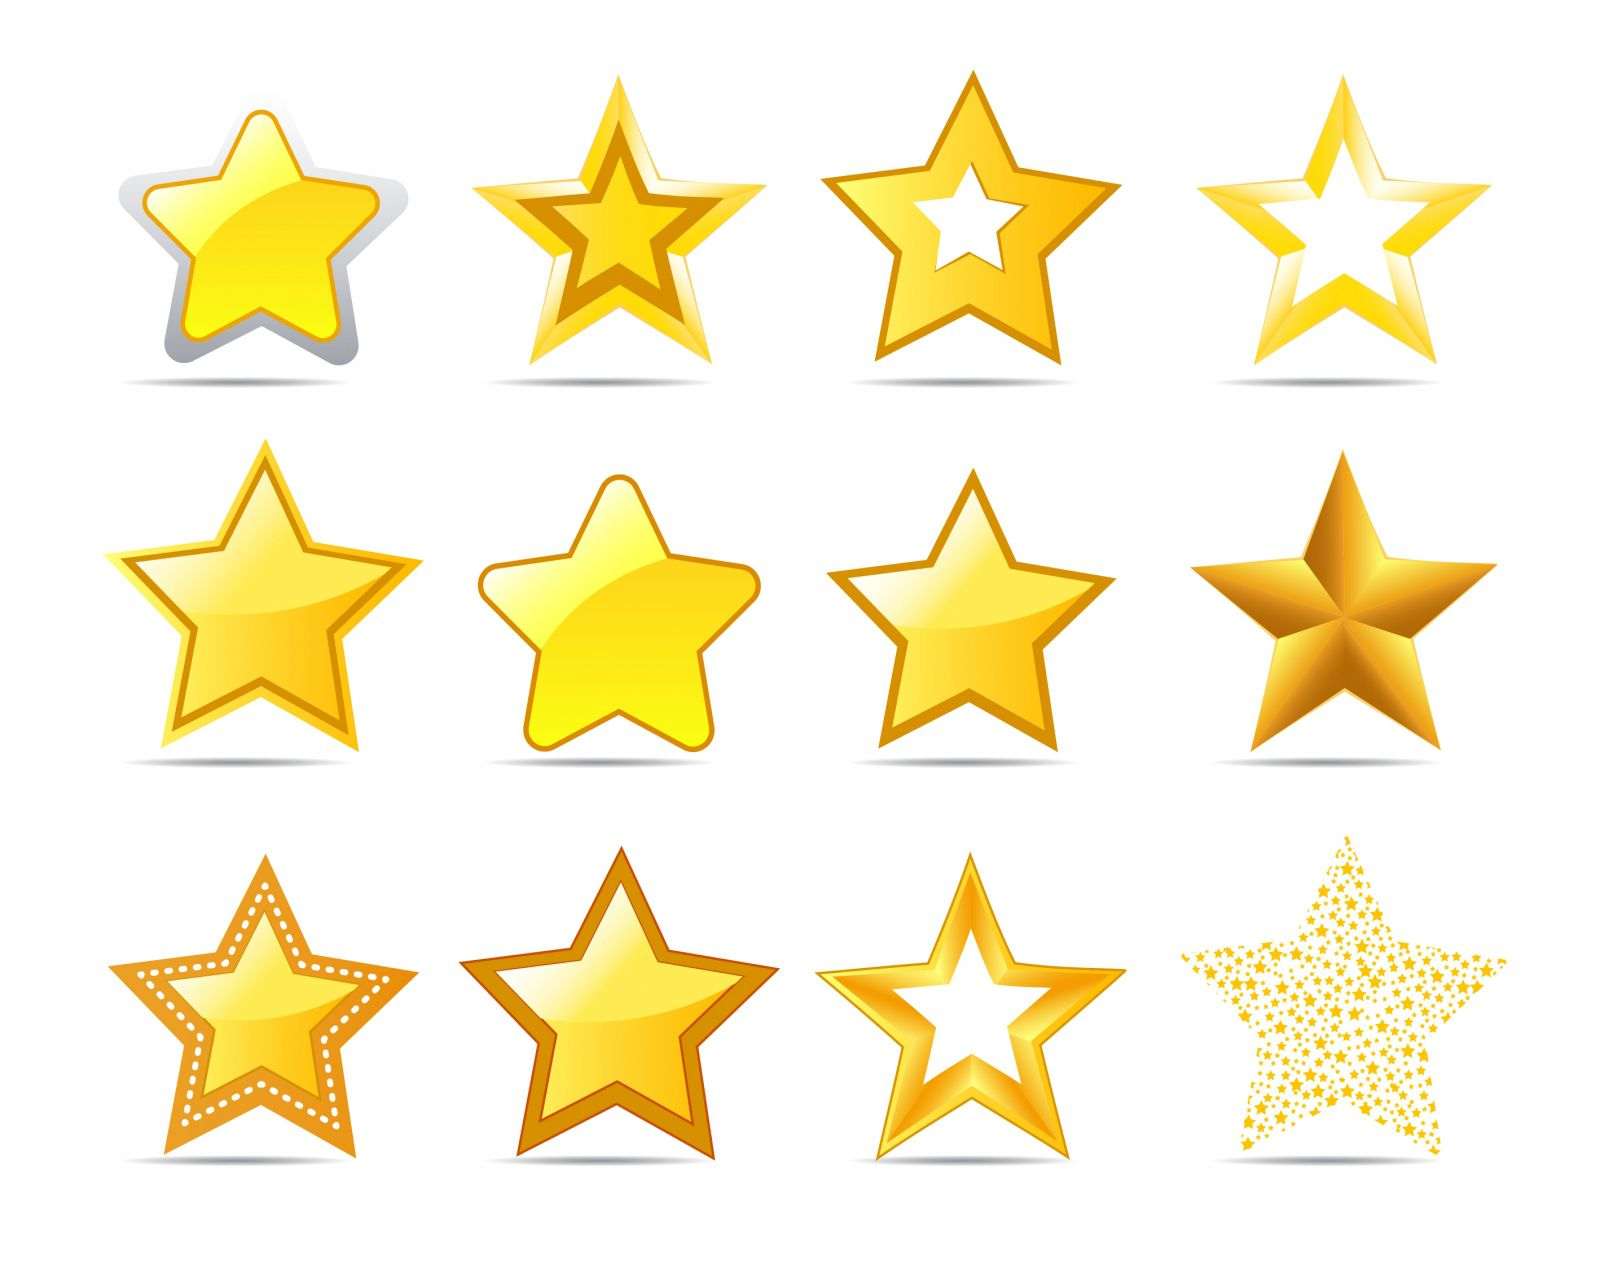 A group of star clip art images